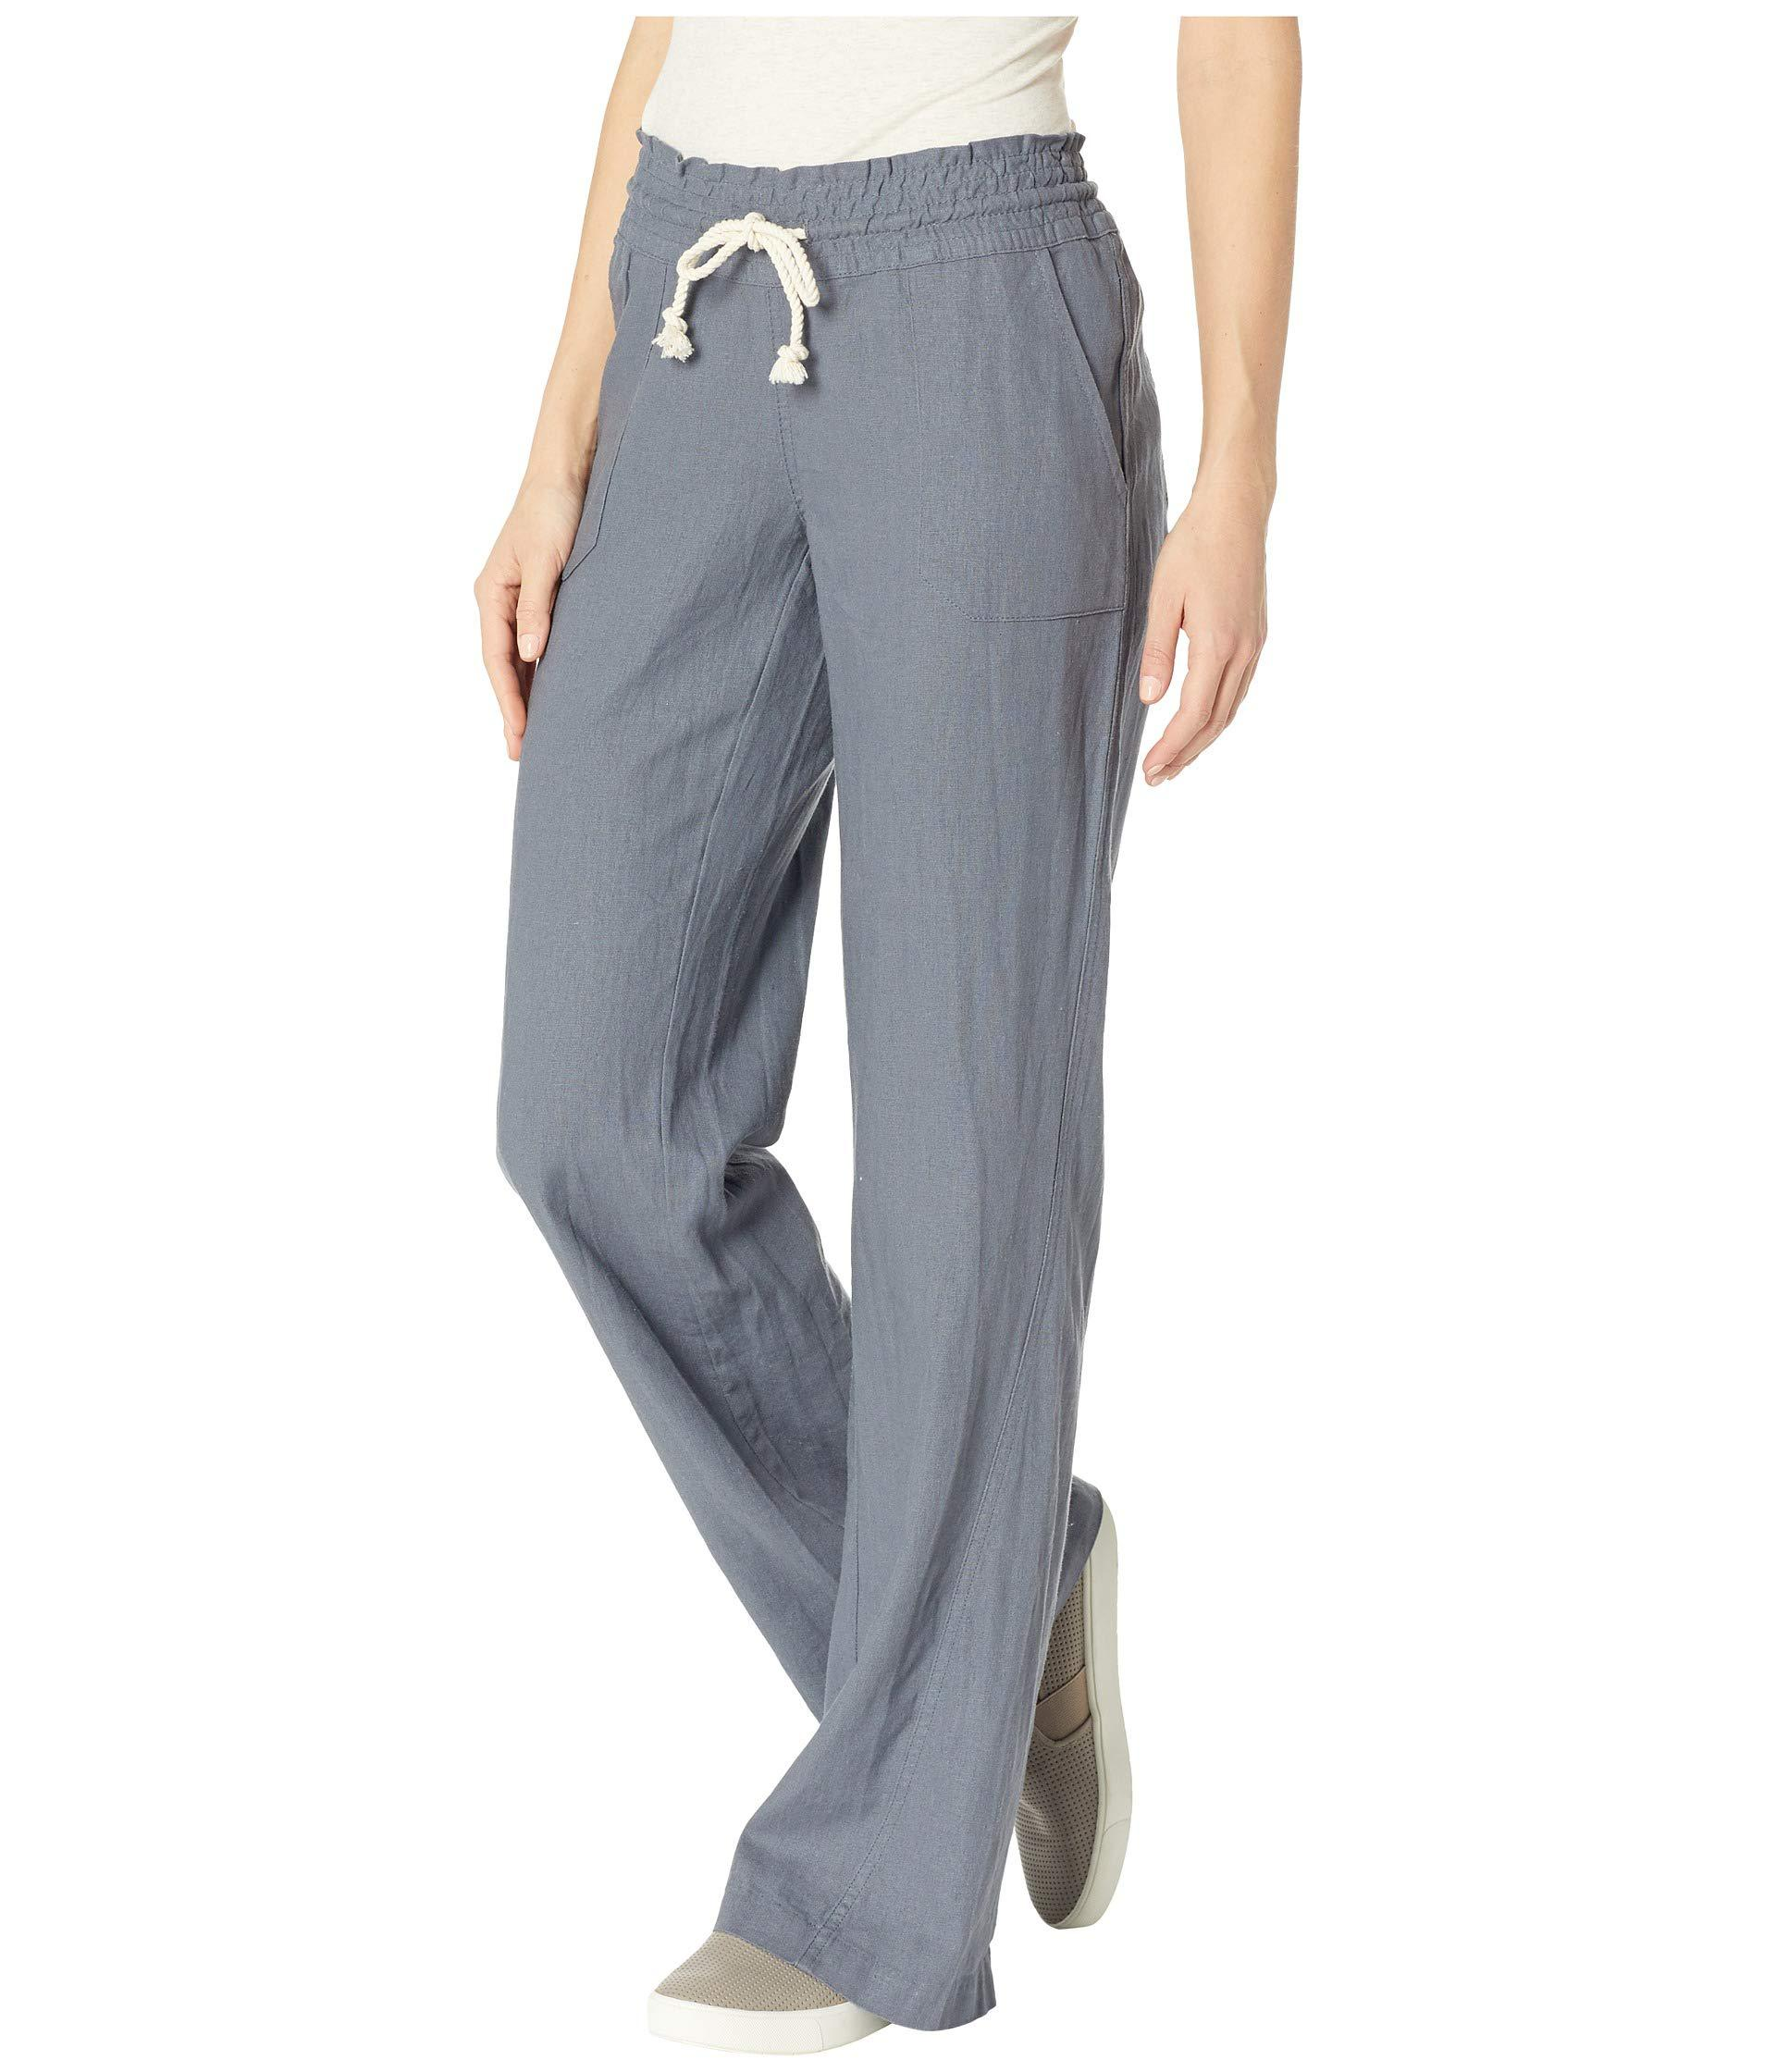 2dc3a7629e Lyst - Roxy Ocean Side Pant (olive) Women's Casual Pants in Blue